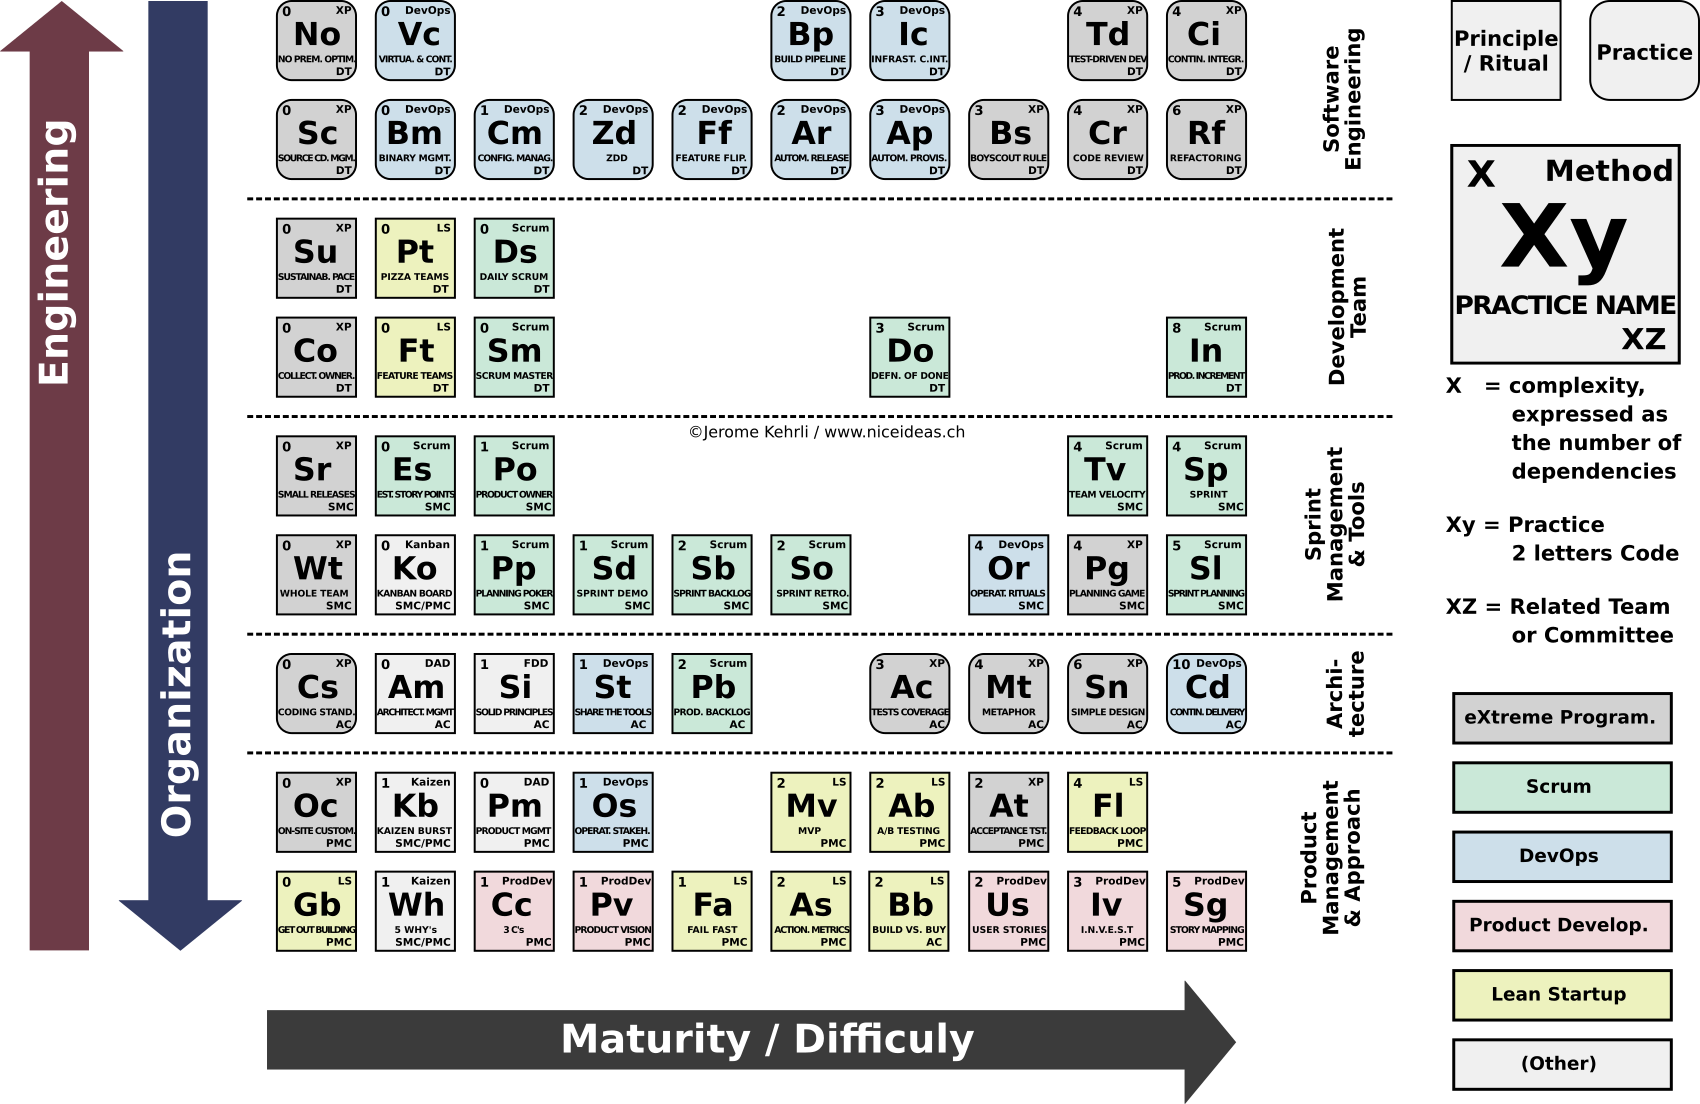 Periodic Table of Agile Principles and Practices - Explanations